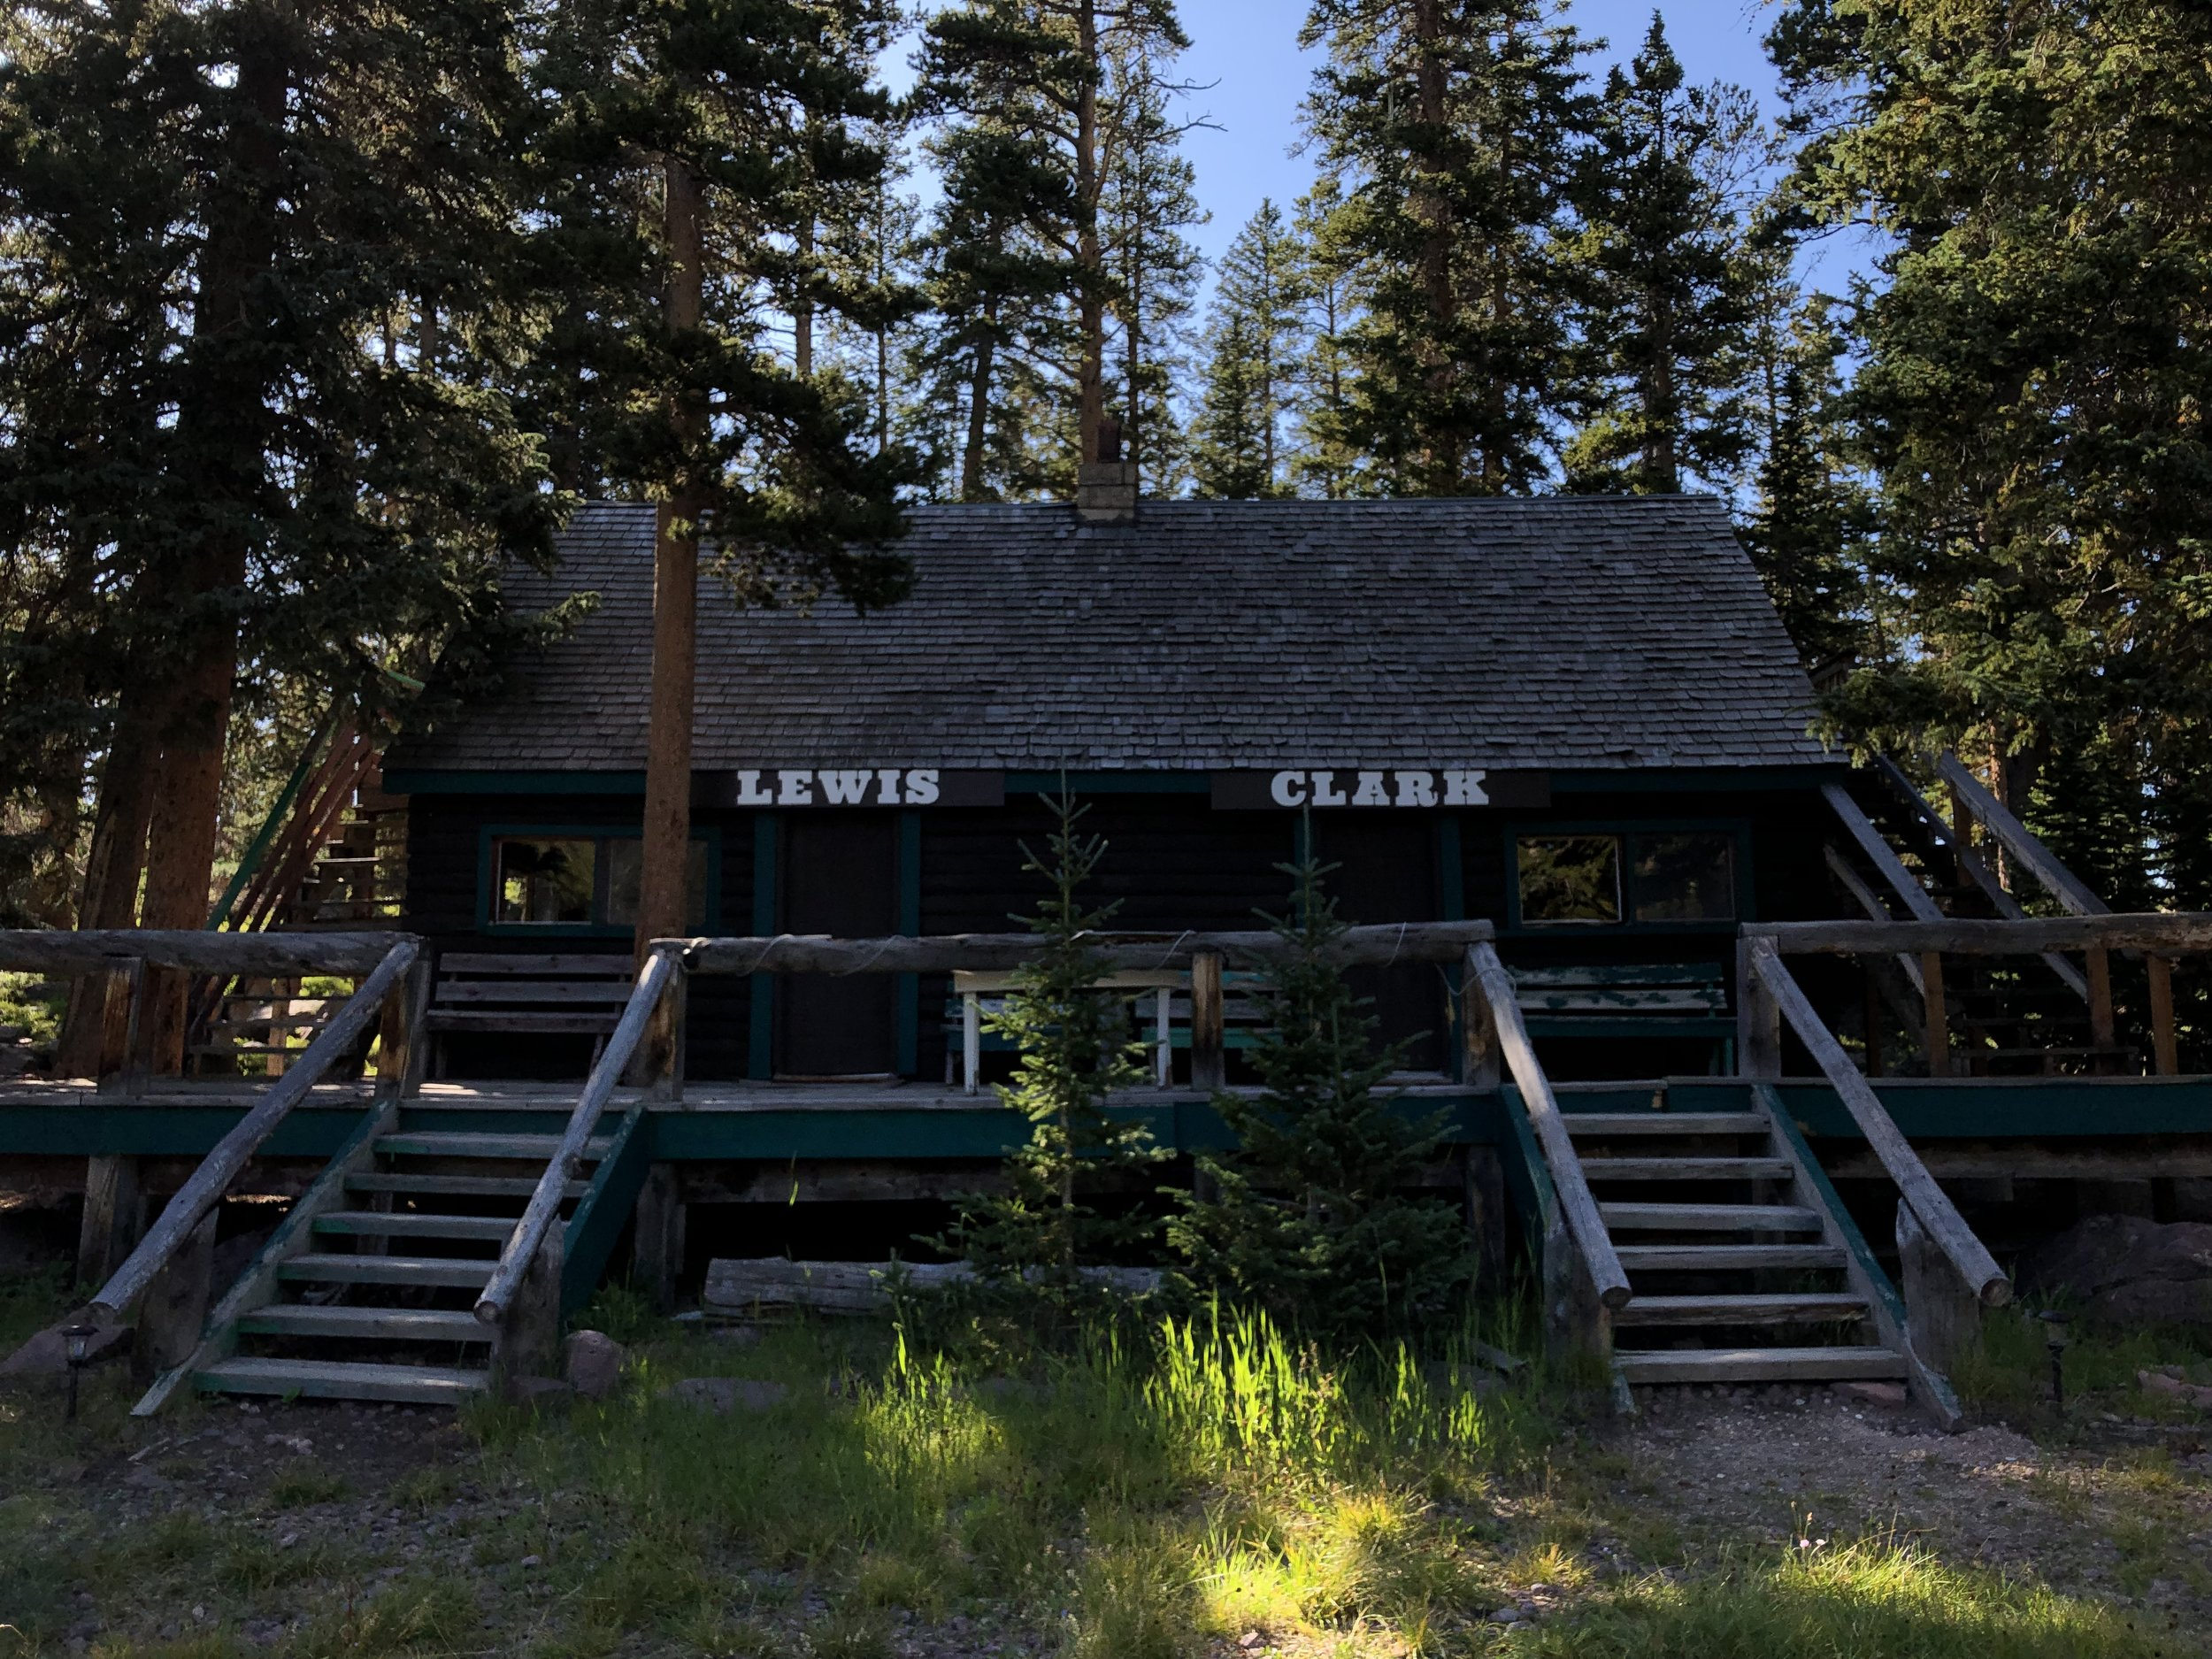 Lewis - Sleeps 6 - 272 sq/ft Duplex Cabin With Private LoftTwo Queen Beds On Main LevelSingle Queen Bed In Loft (Private Entrance)PricingSunday - Thursday | $100/NightFriday & Saturday | $115/Night